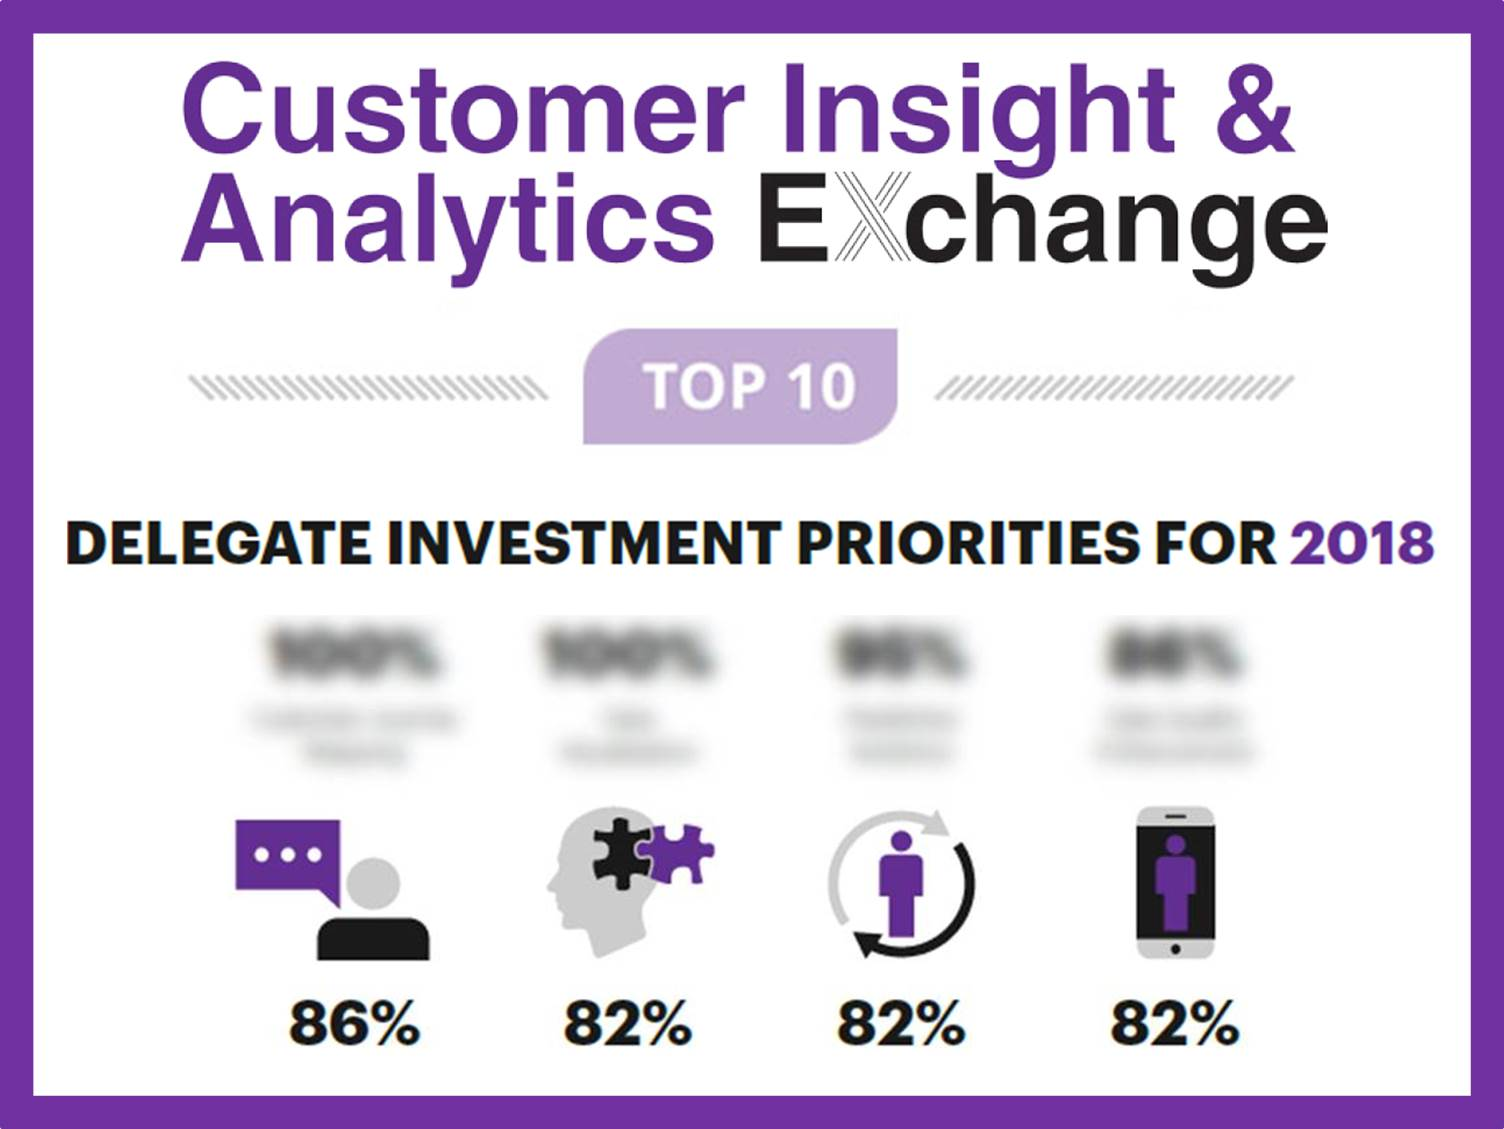 Customer Insight and Analytics Top 10 Investment Priorities [sponsorship]